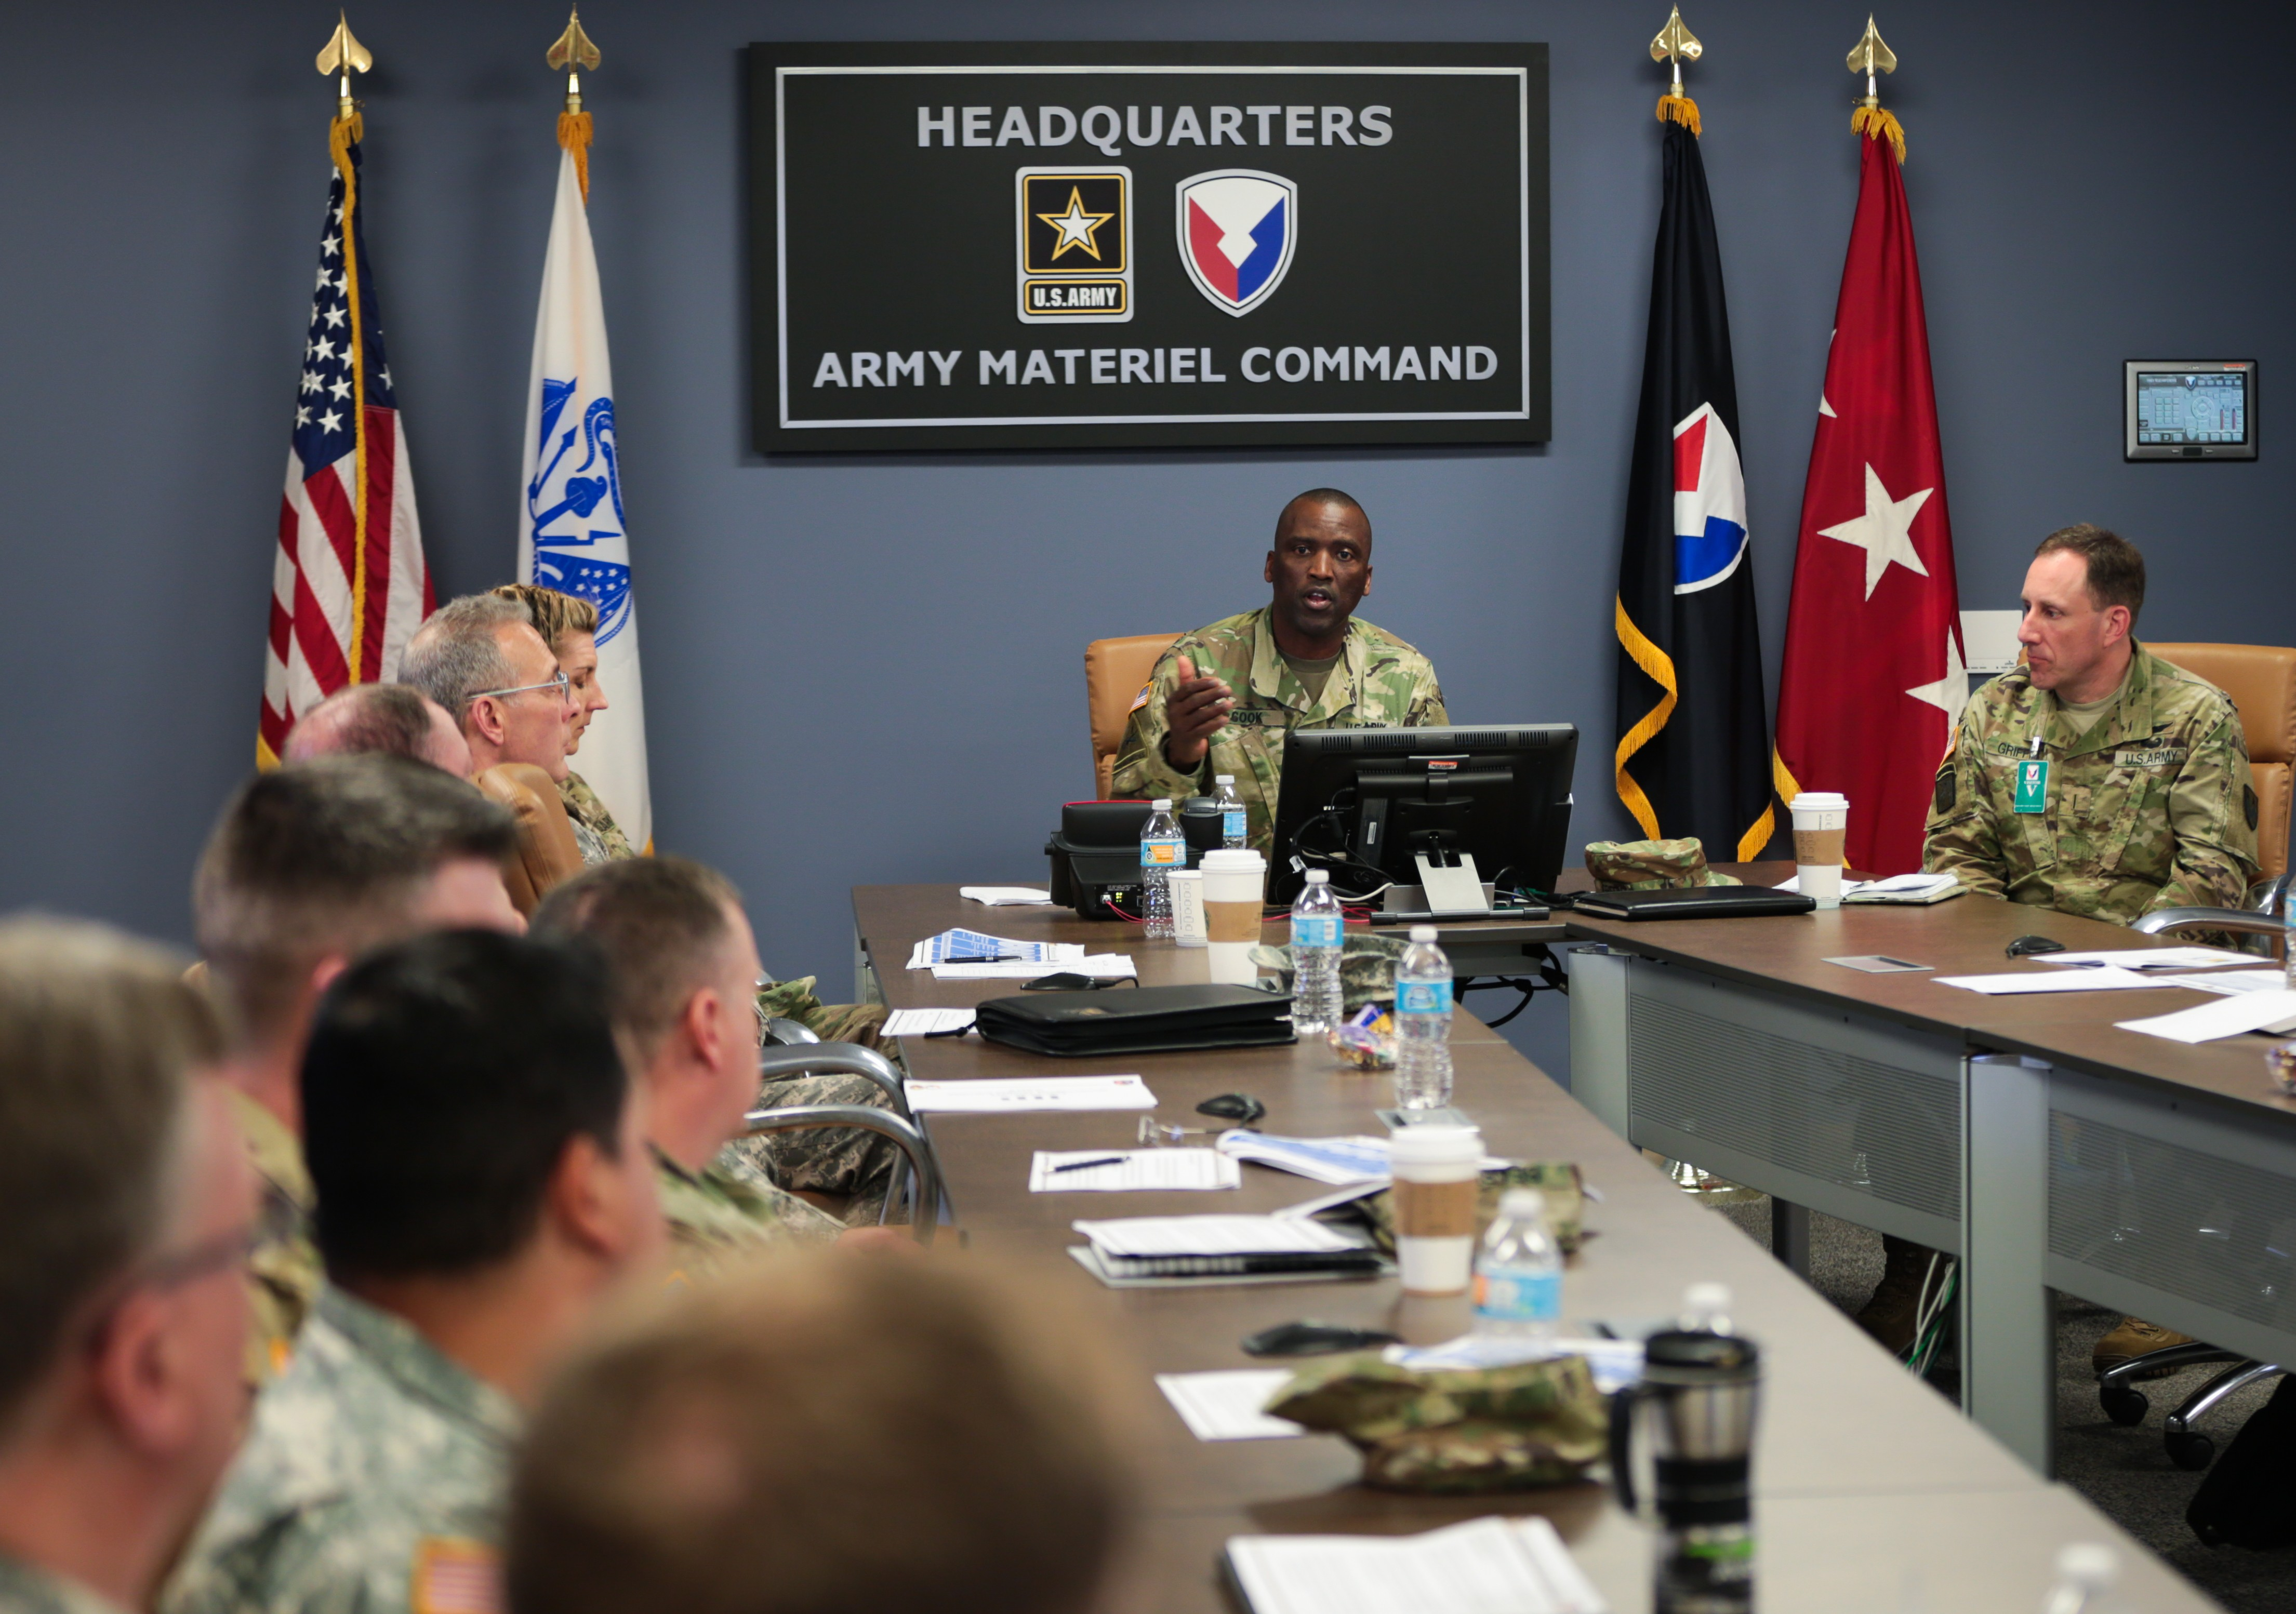 Reserve Sol Rs Essential To Building Army Capabilities